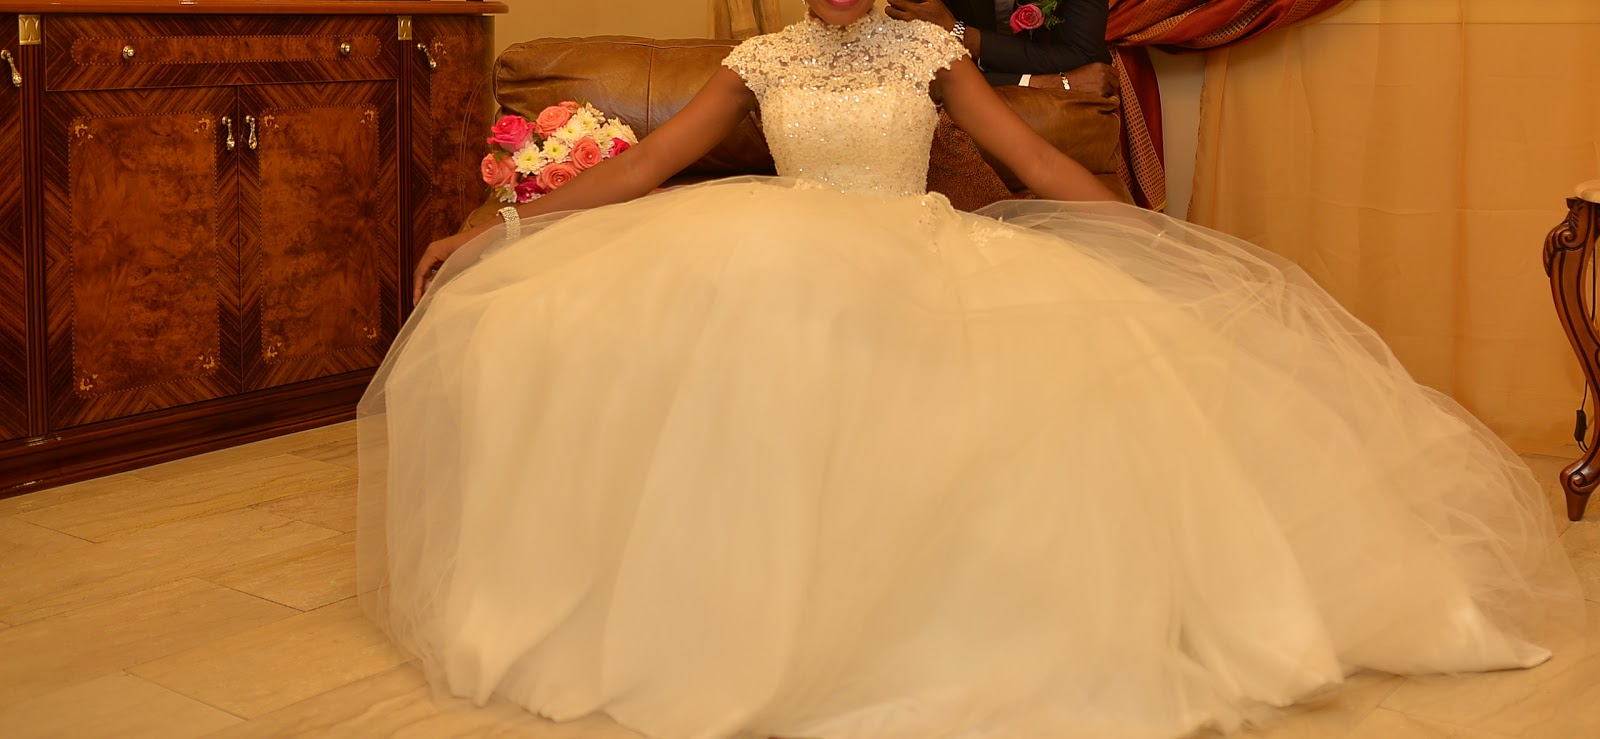 For Sale Wedding Dress 65 New Wedding Gowns For Sale